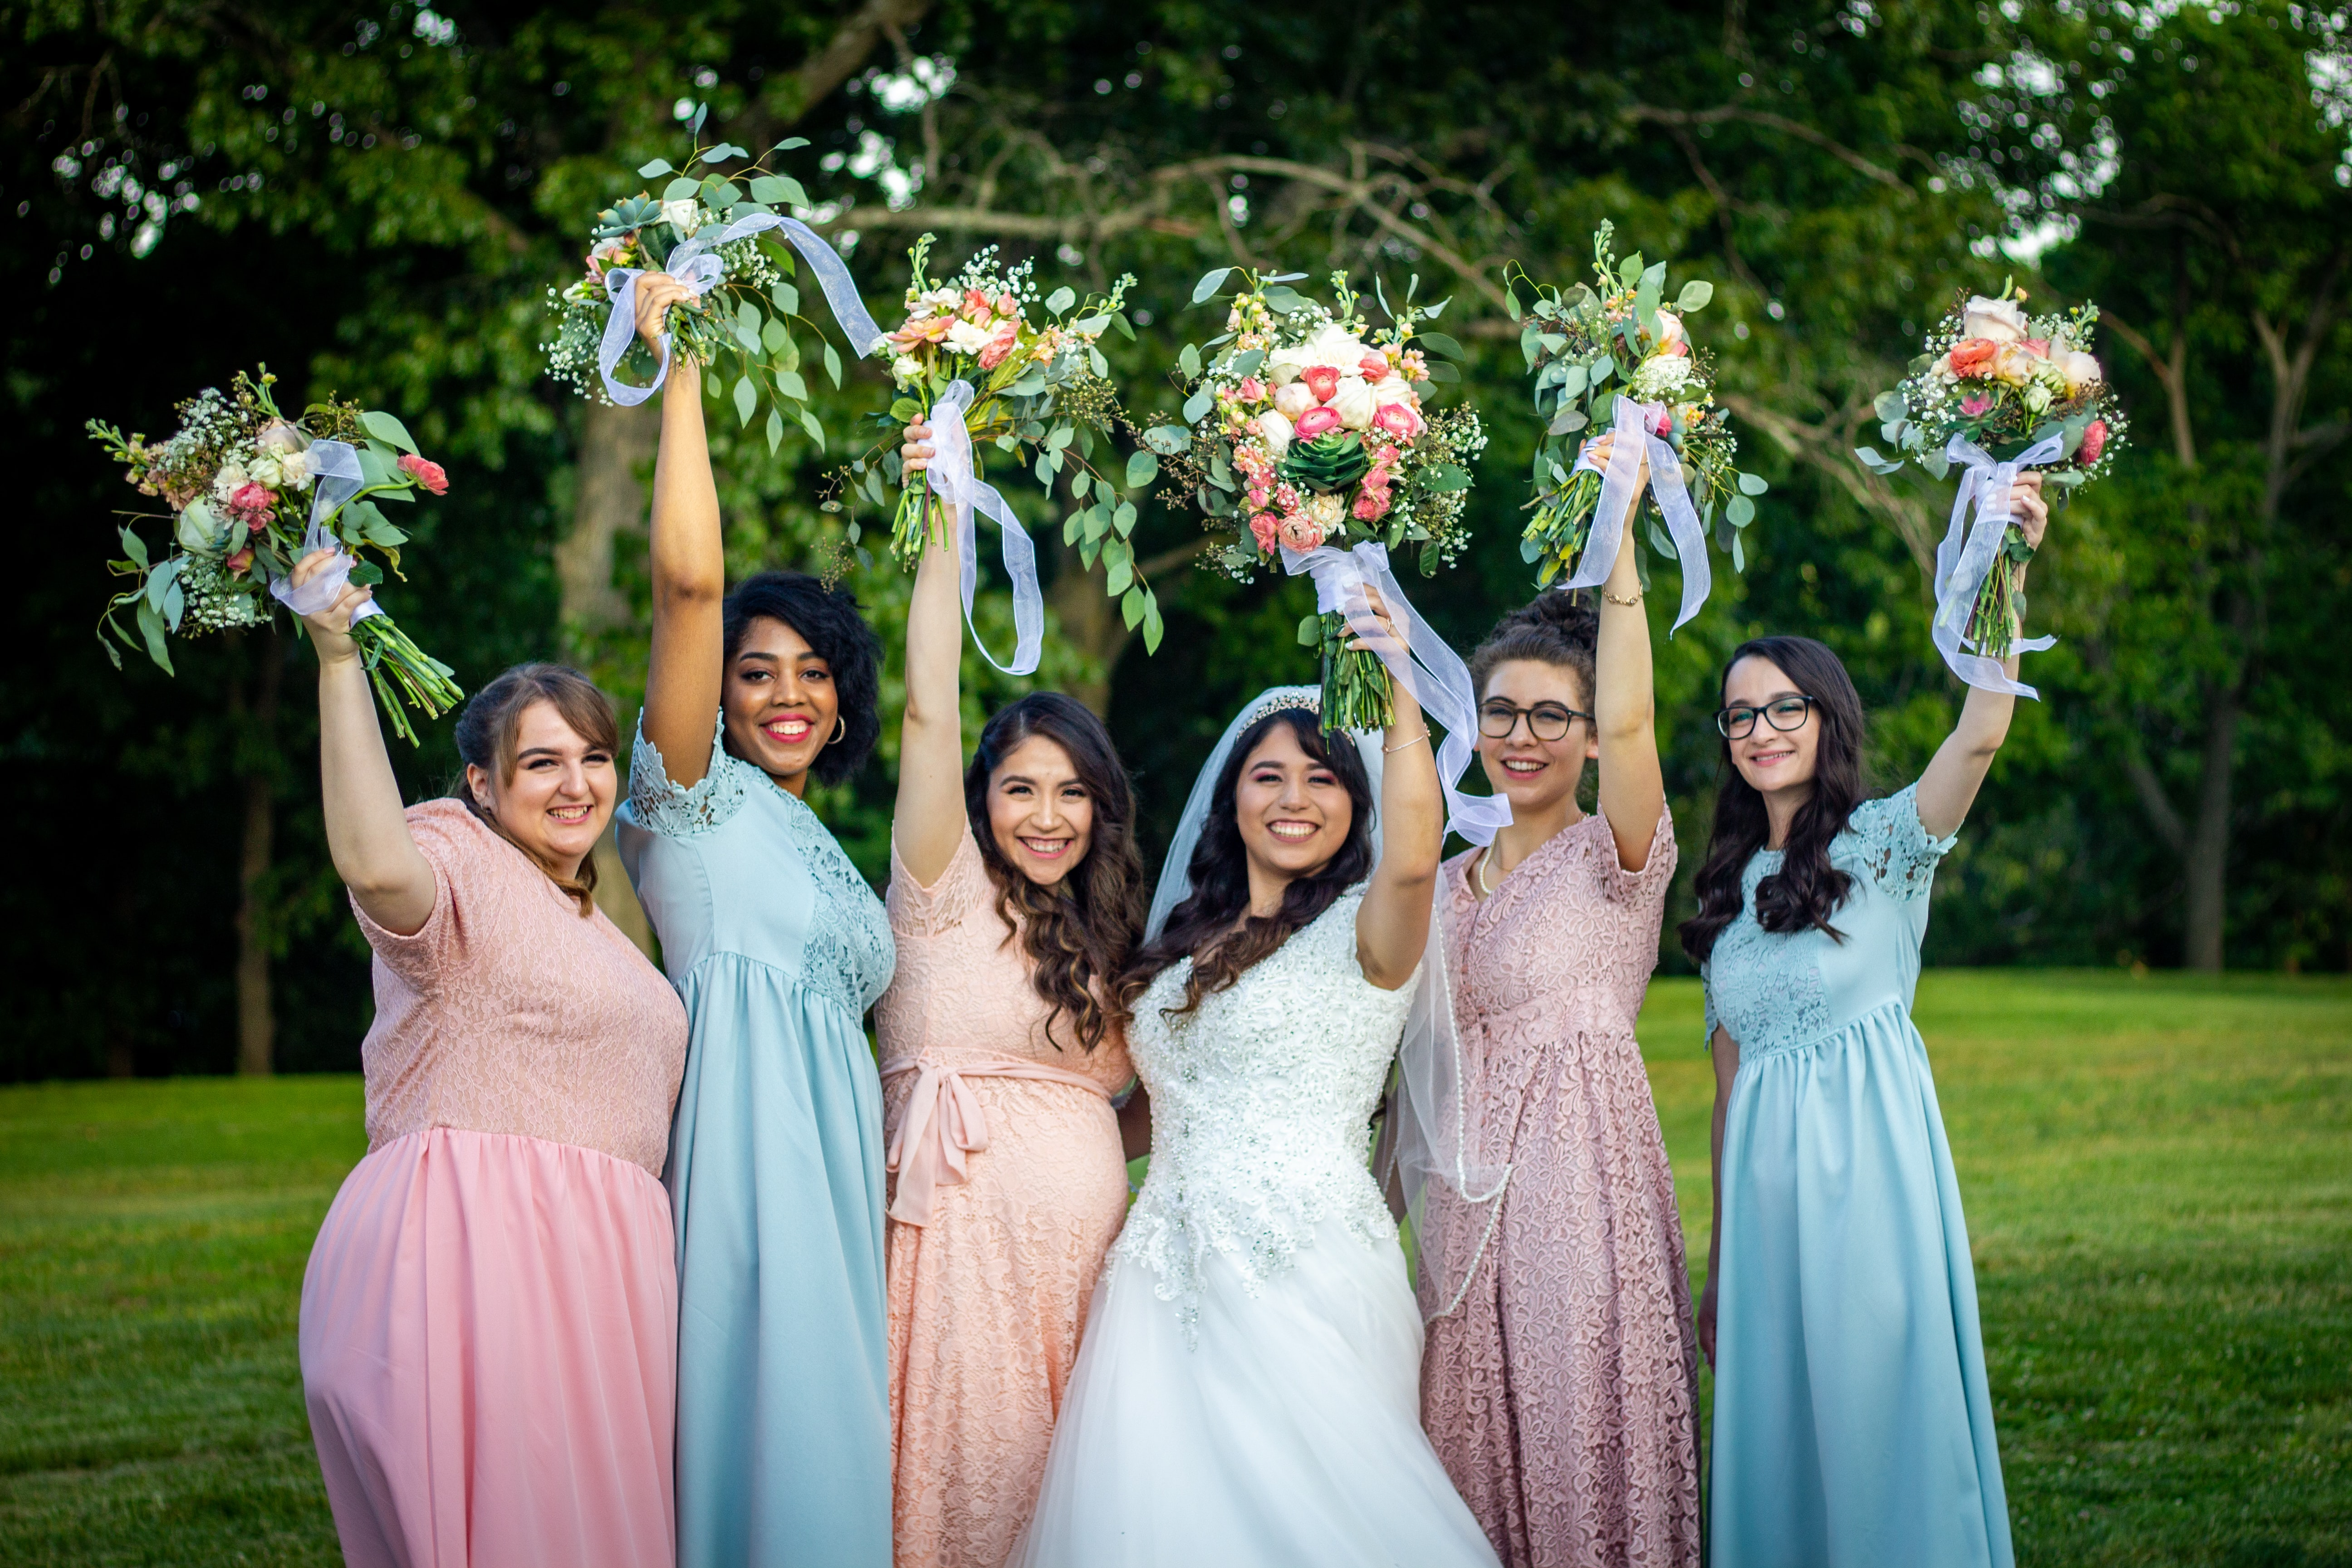 How to Ace Your Bridesmaid Role